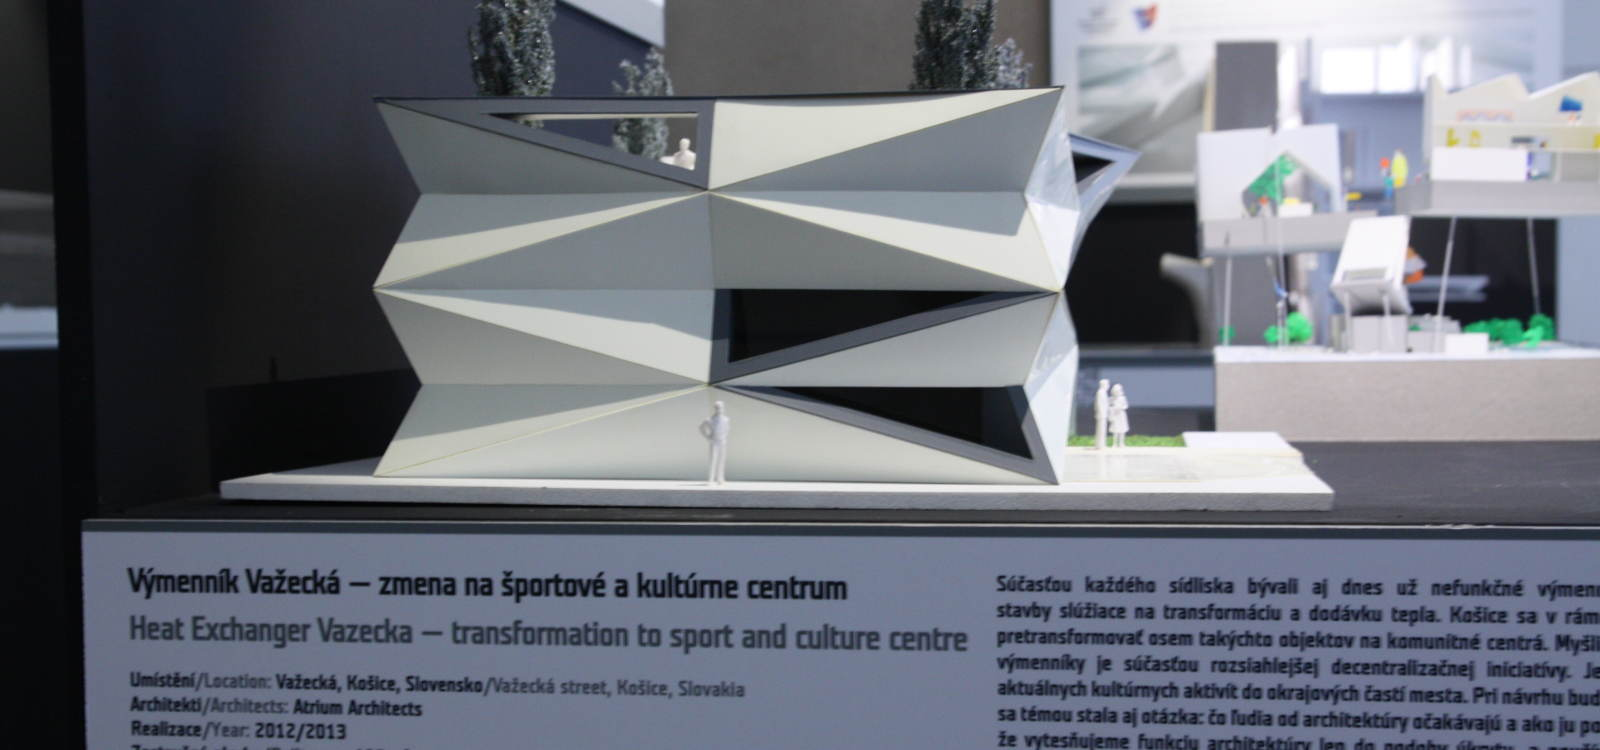 Atrium on Architecture Week Prague 2015 | News | Atrium Architekti